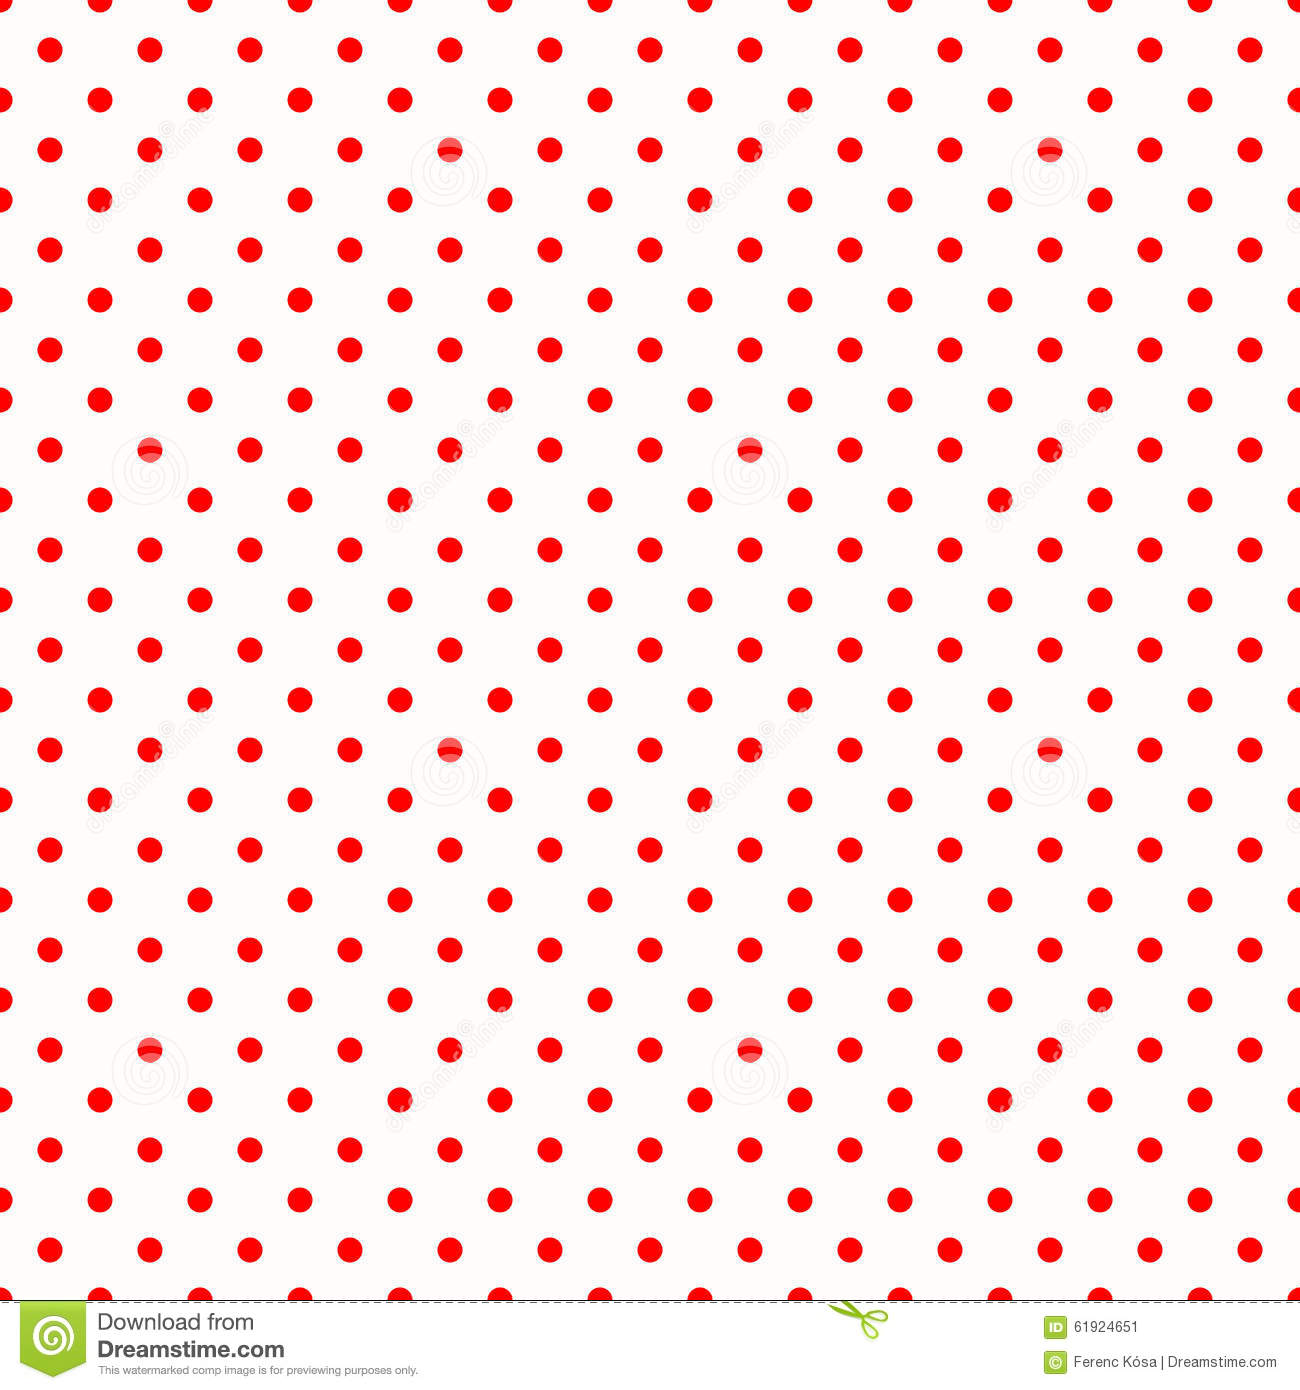 Red polka dots on white pattern stock illustration image for Red and white polka dot pattern